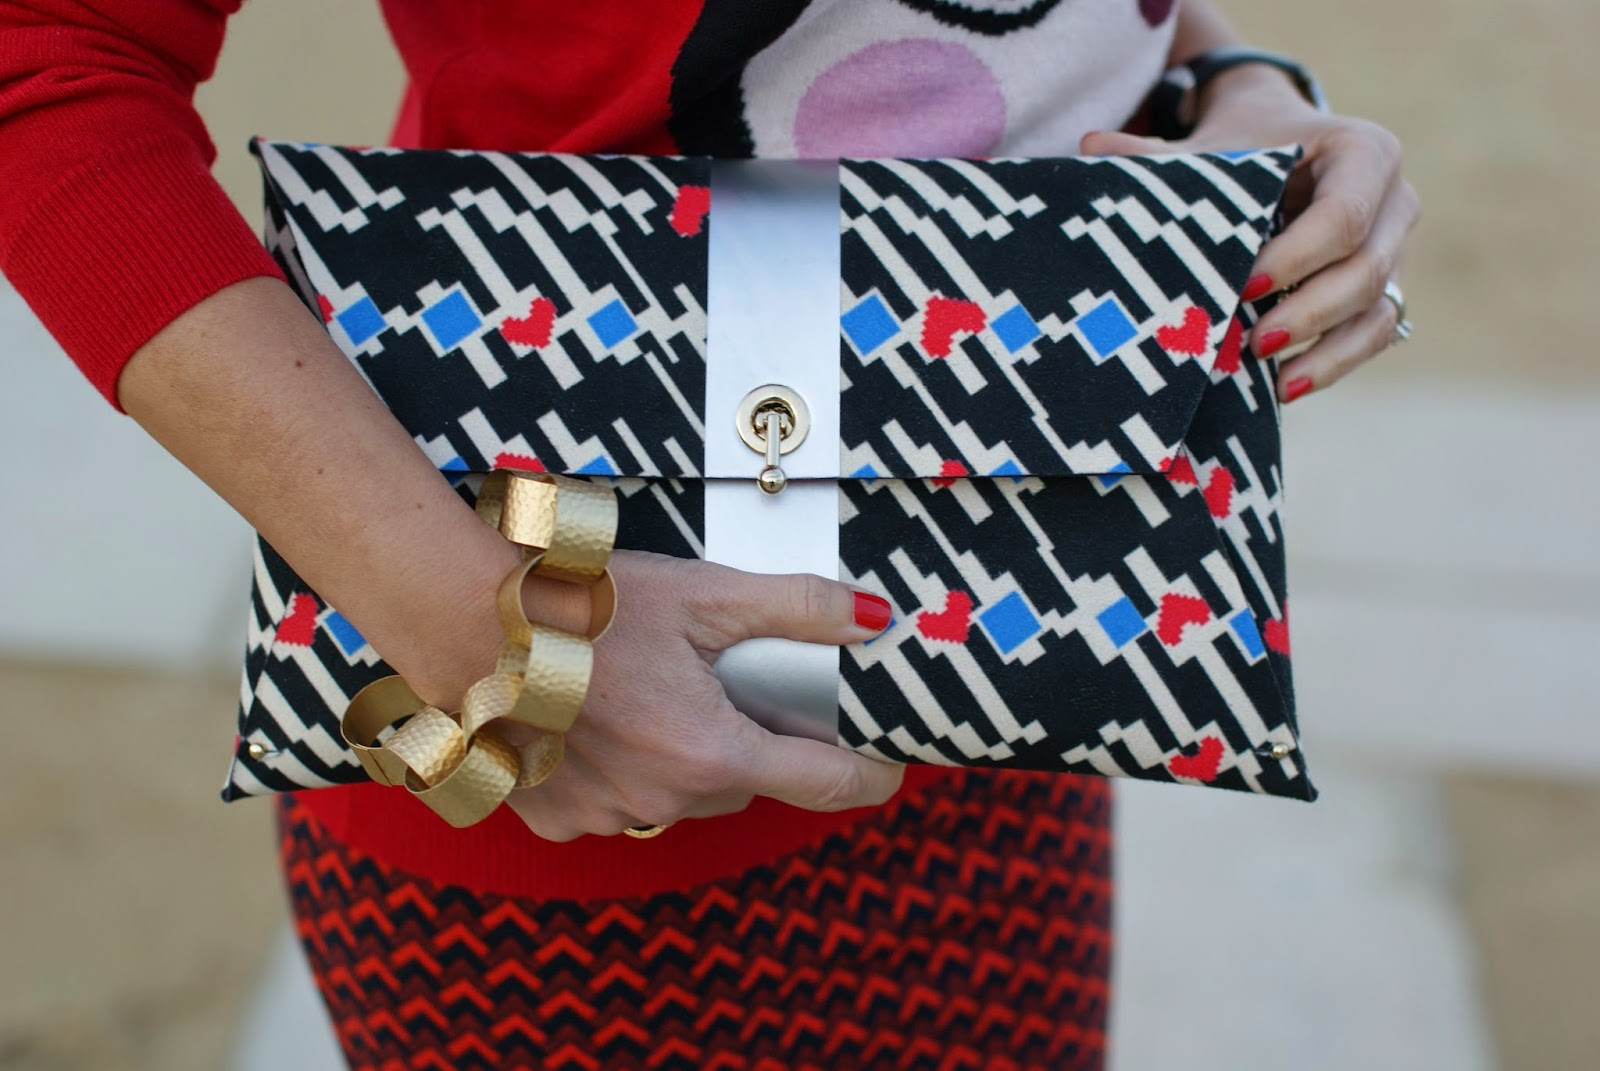 Ohmai bag clutch and Vitti Ferria Contin chain bracelet, Fashion and Cookies, fashion blogger